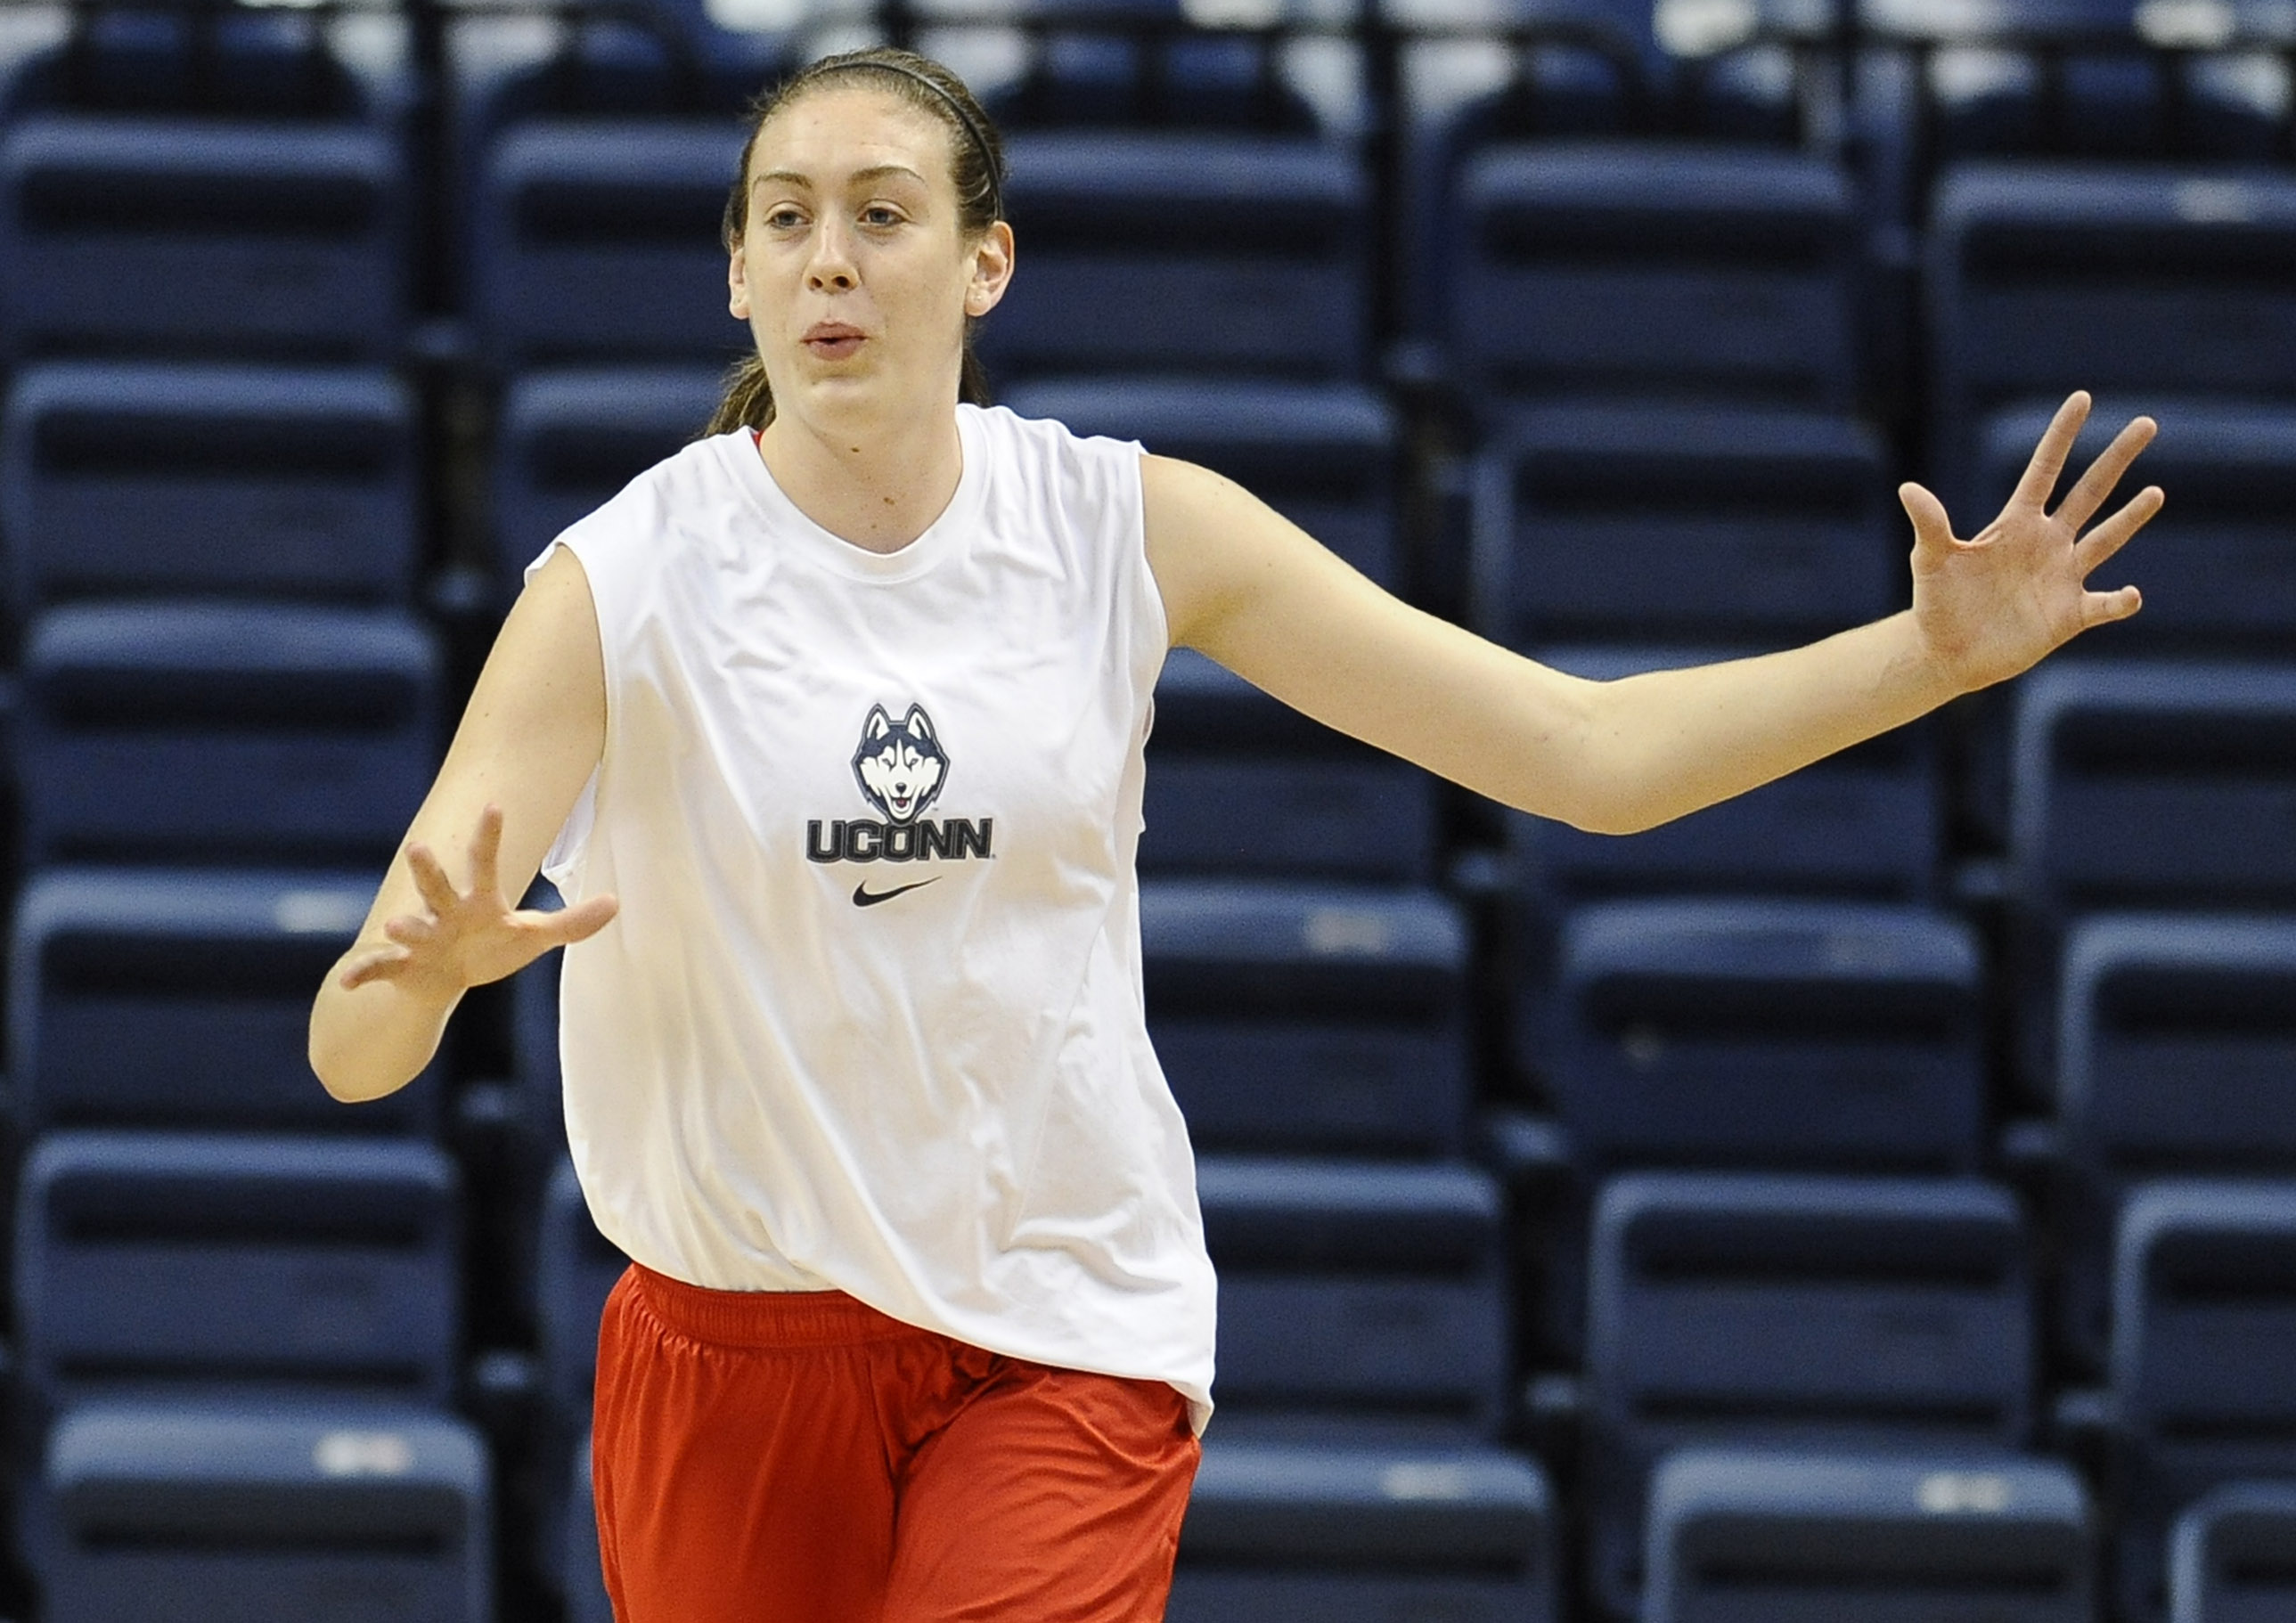 Connecticut's Breanna Stewart practices after the team's NCAA college basketball media day, Monday, Sept. 30, 2013, in Storrs, Conn